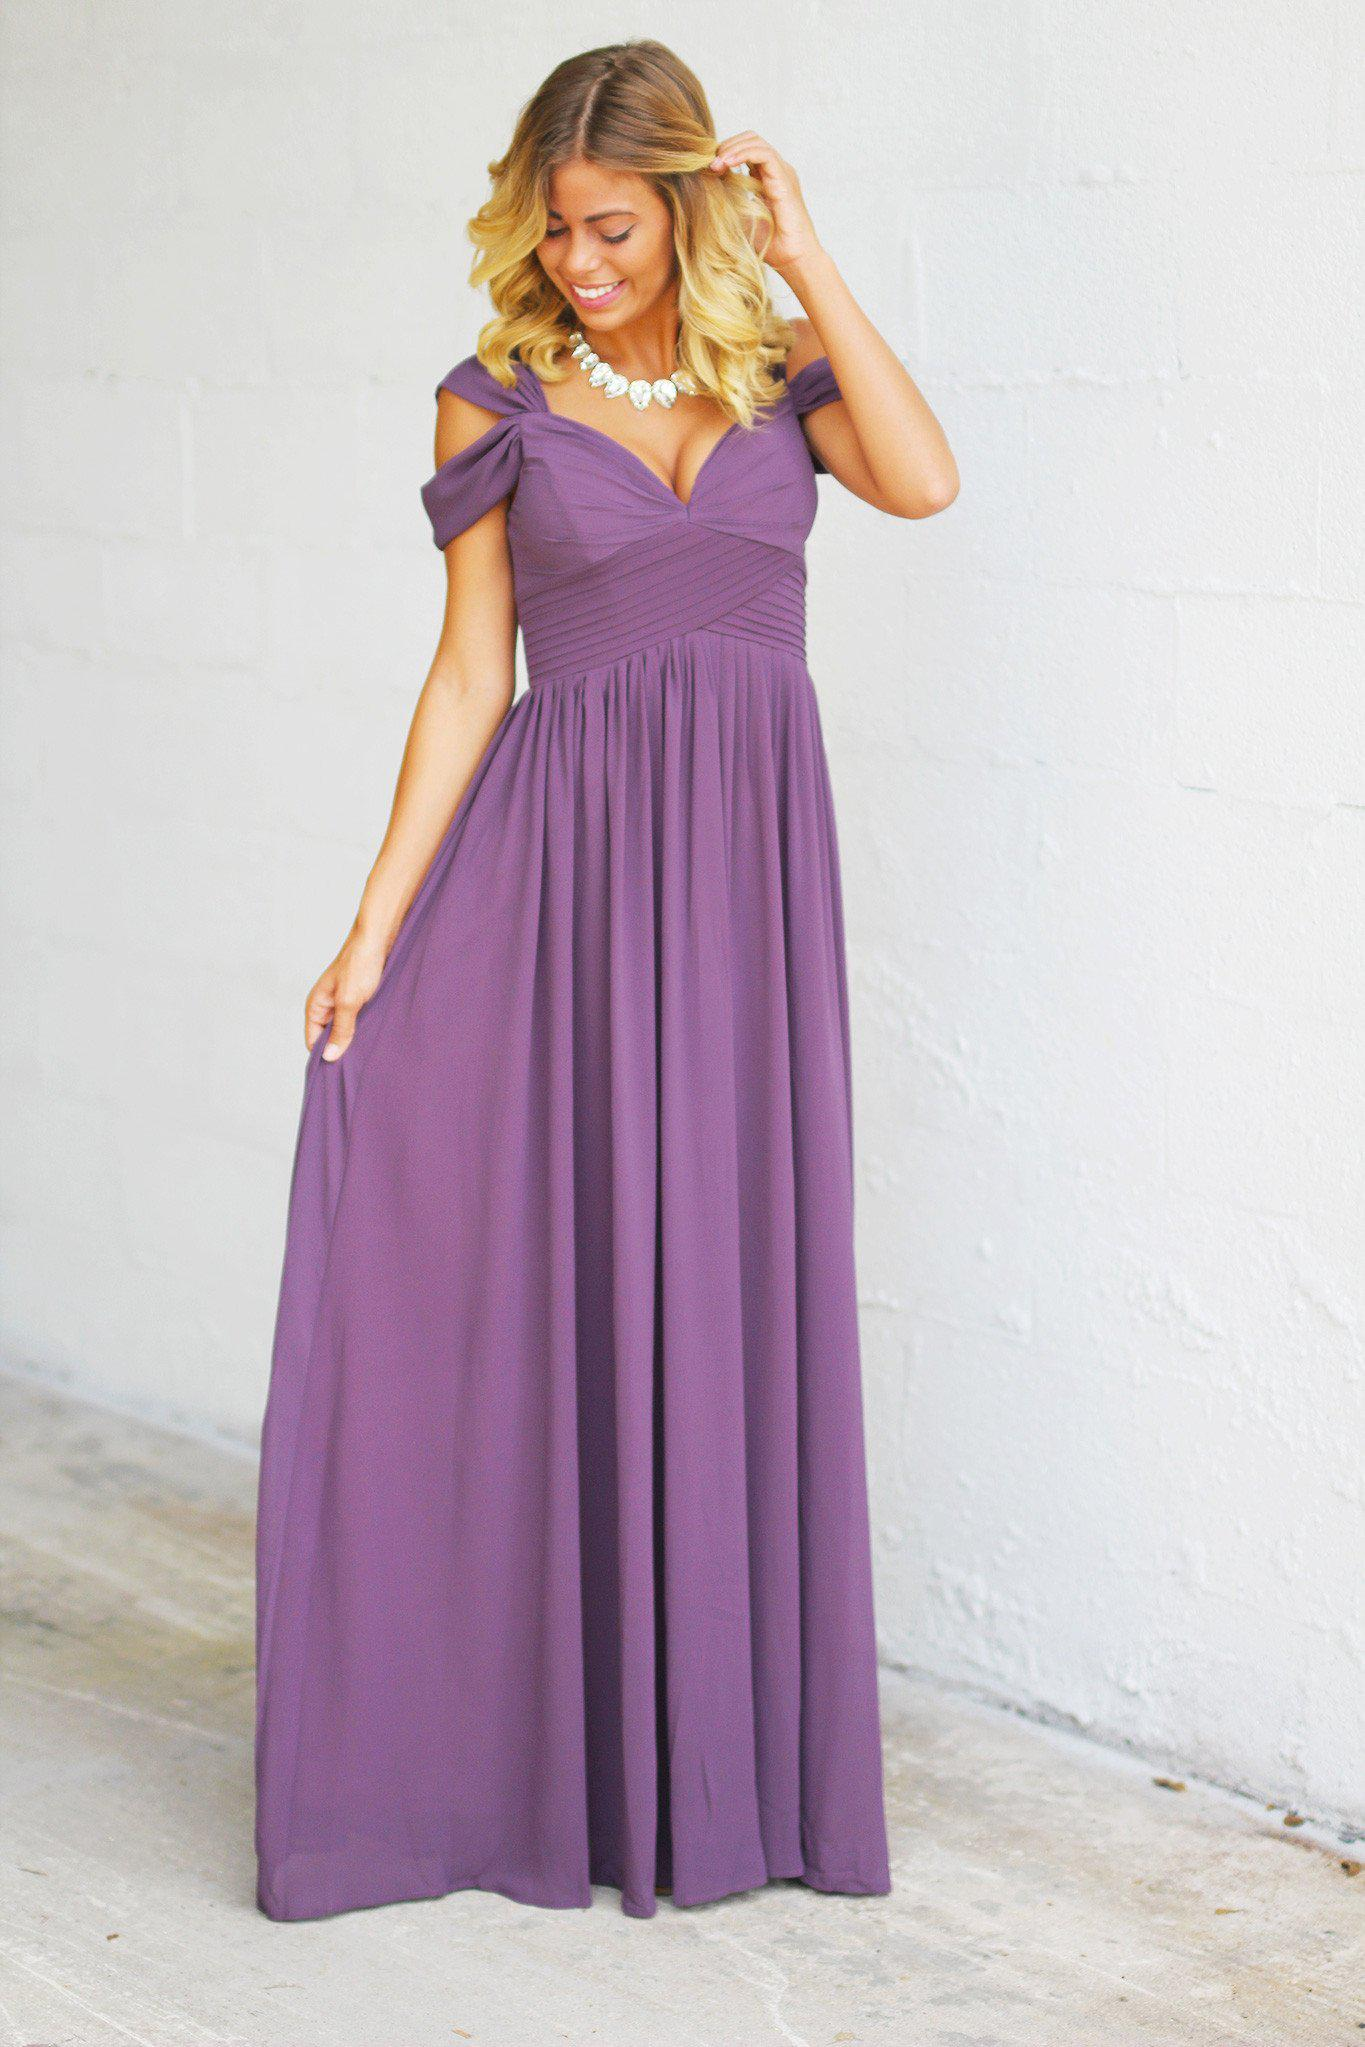 Dusty purple off shoulder maxi dress dusty purple maxi dress dusty purple off shoulder maxi dress ombrellifo Image collections